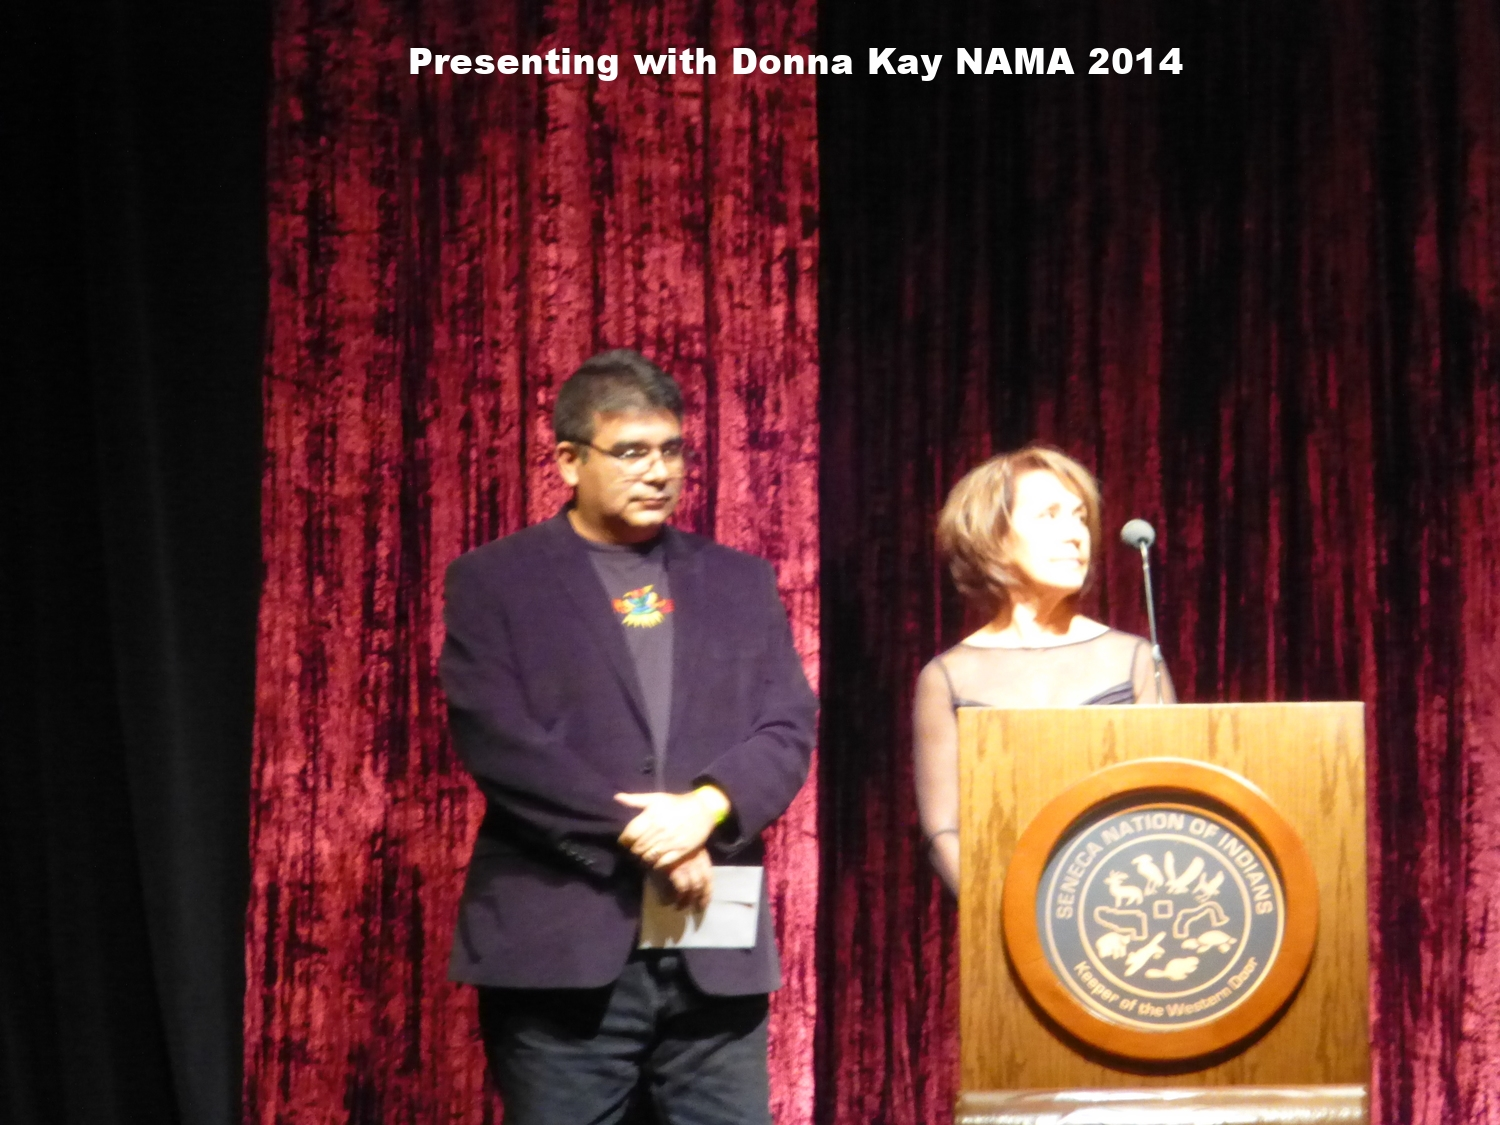 Presenting with Donna Kay